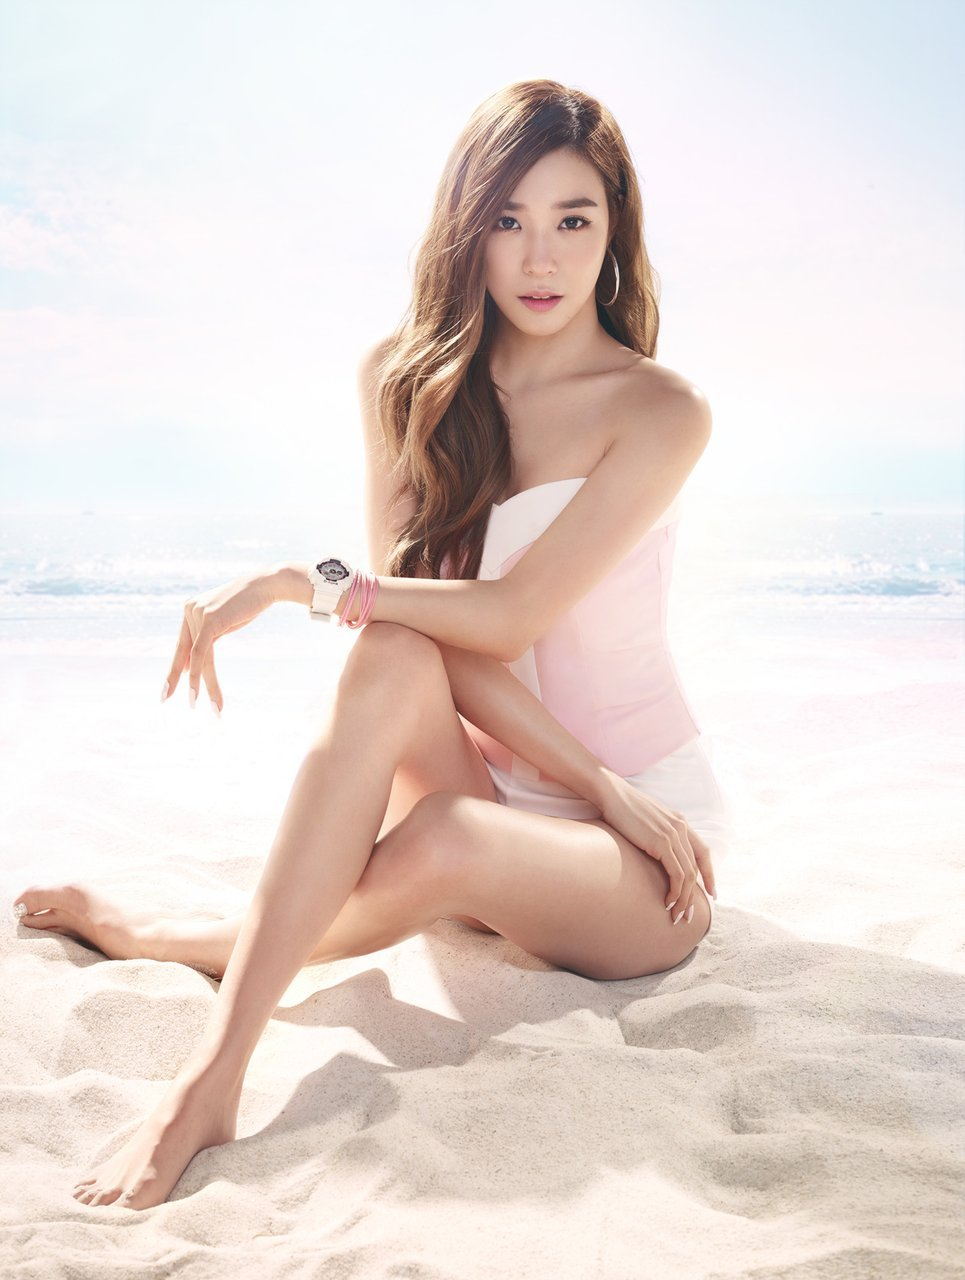 Girls generation sexy pics Top 10 Sexiest Outfits Of Girls Generation Tiffany Quietly